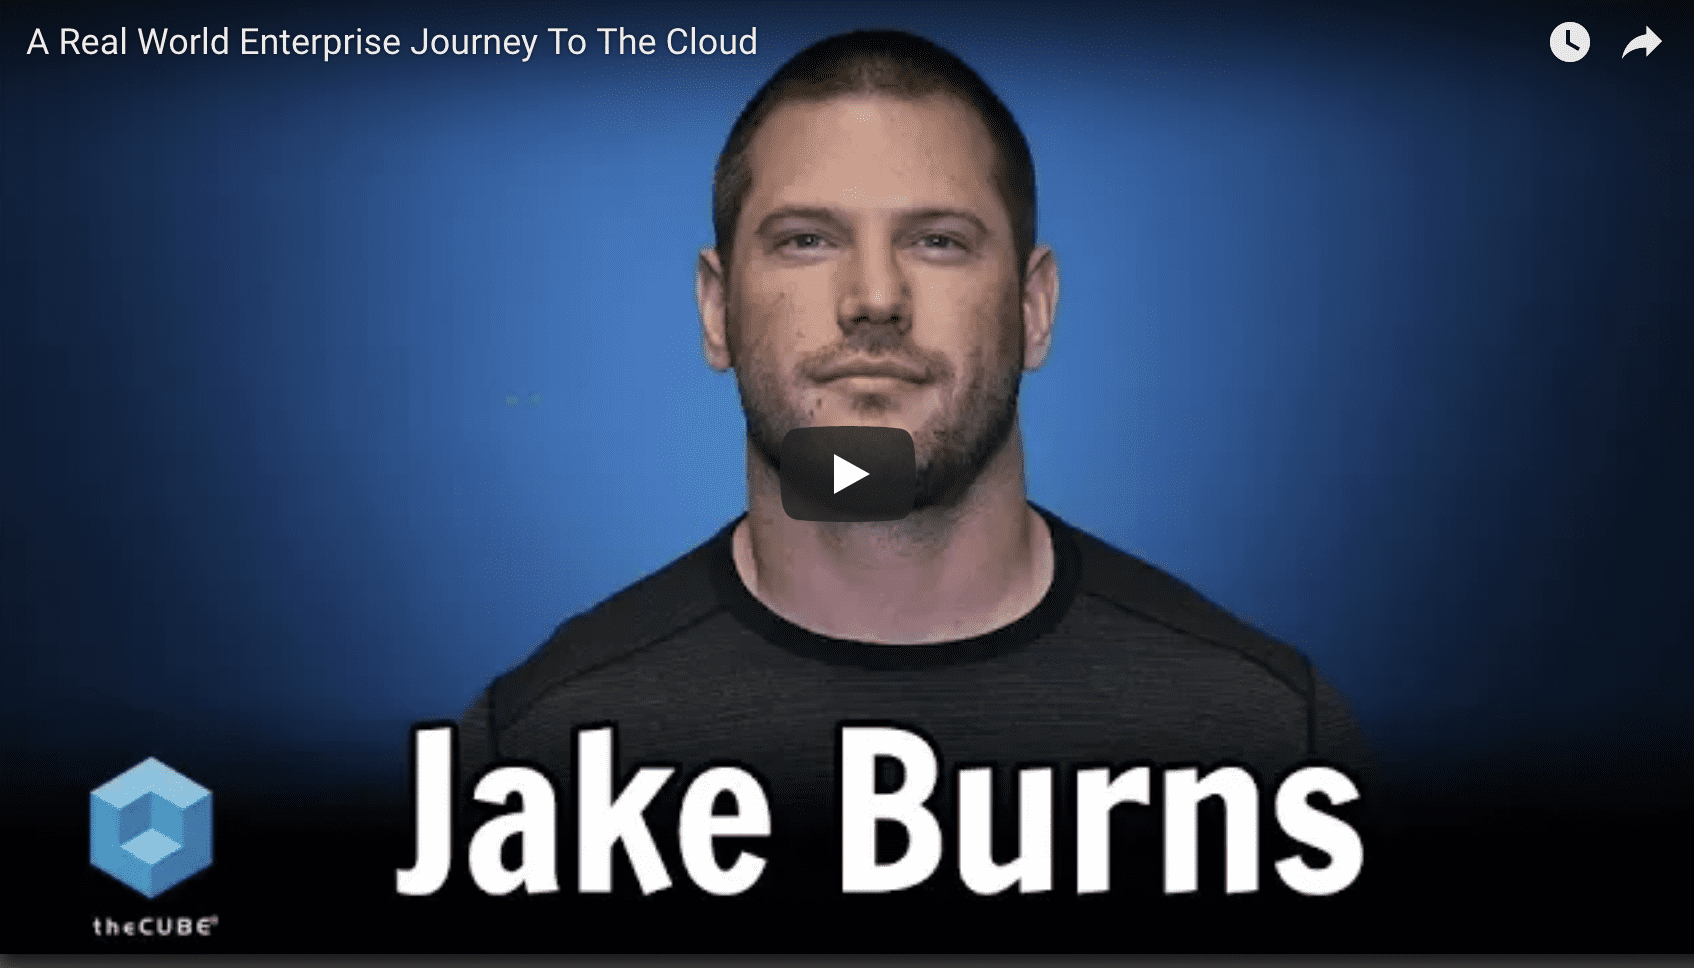 a real world journey to the cloud